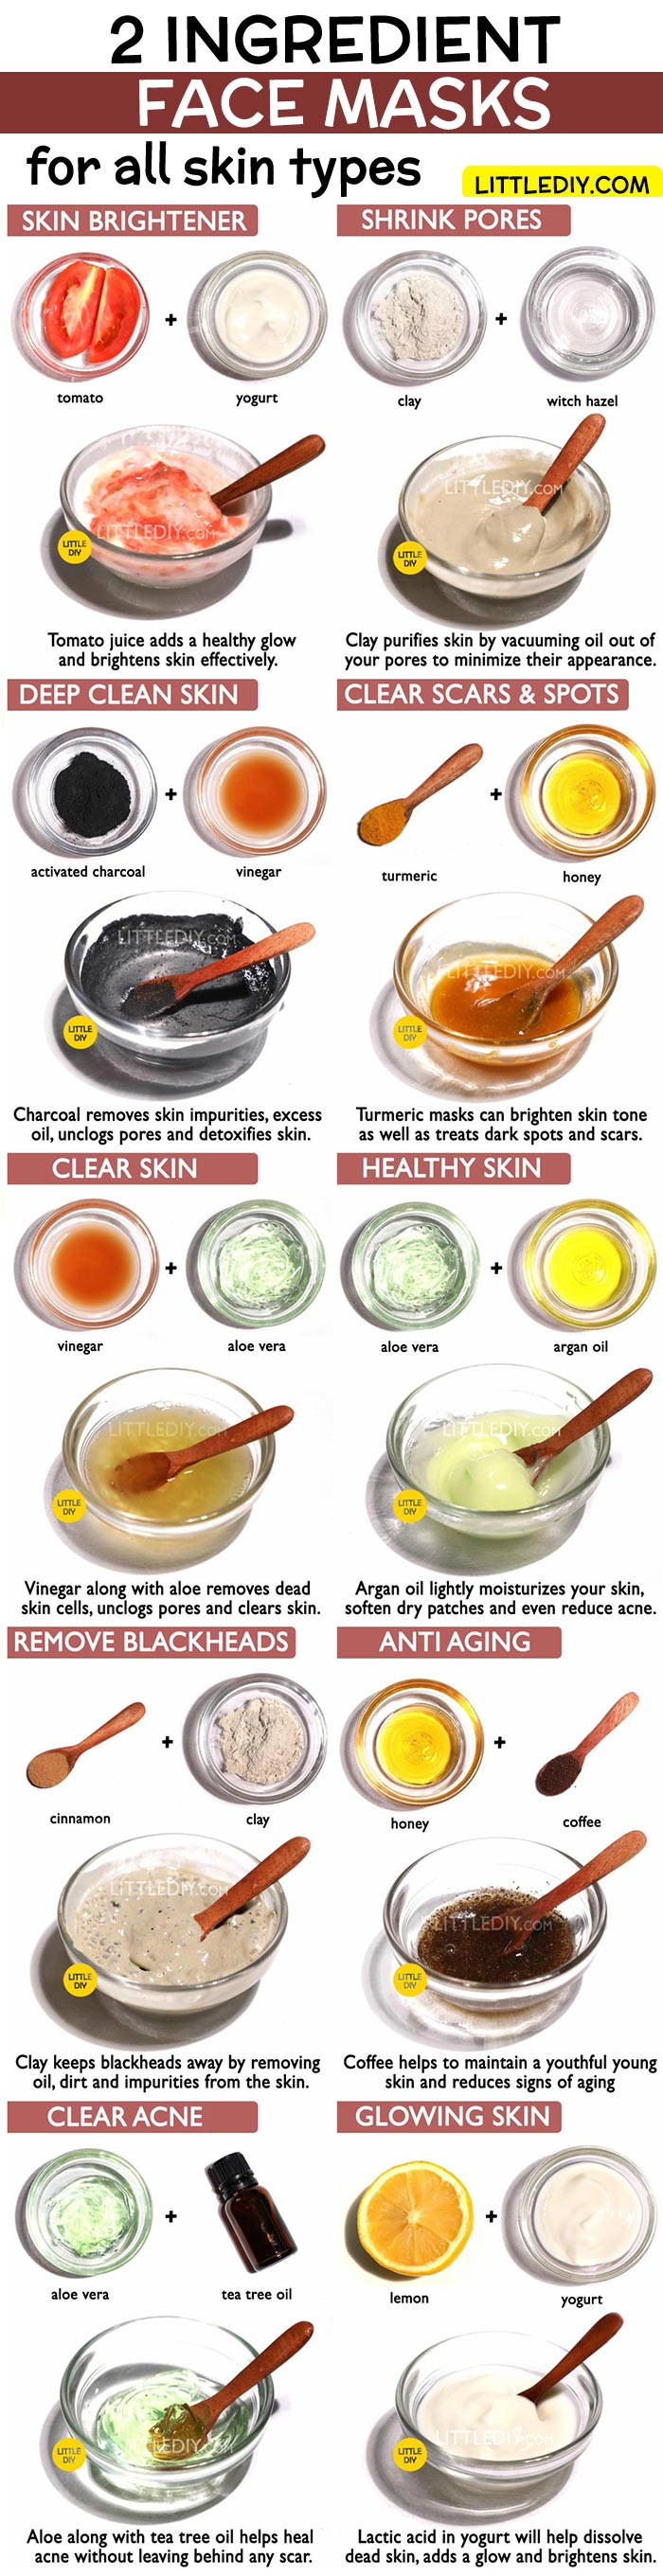 Top 10 2 INGREDIENT AMAZING FACE MASKS for all skin type